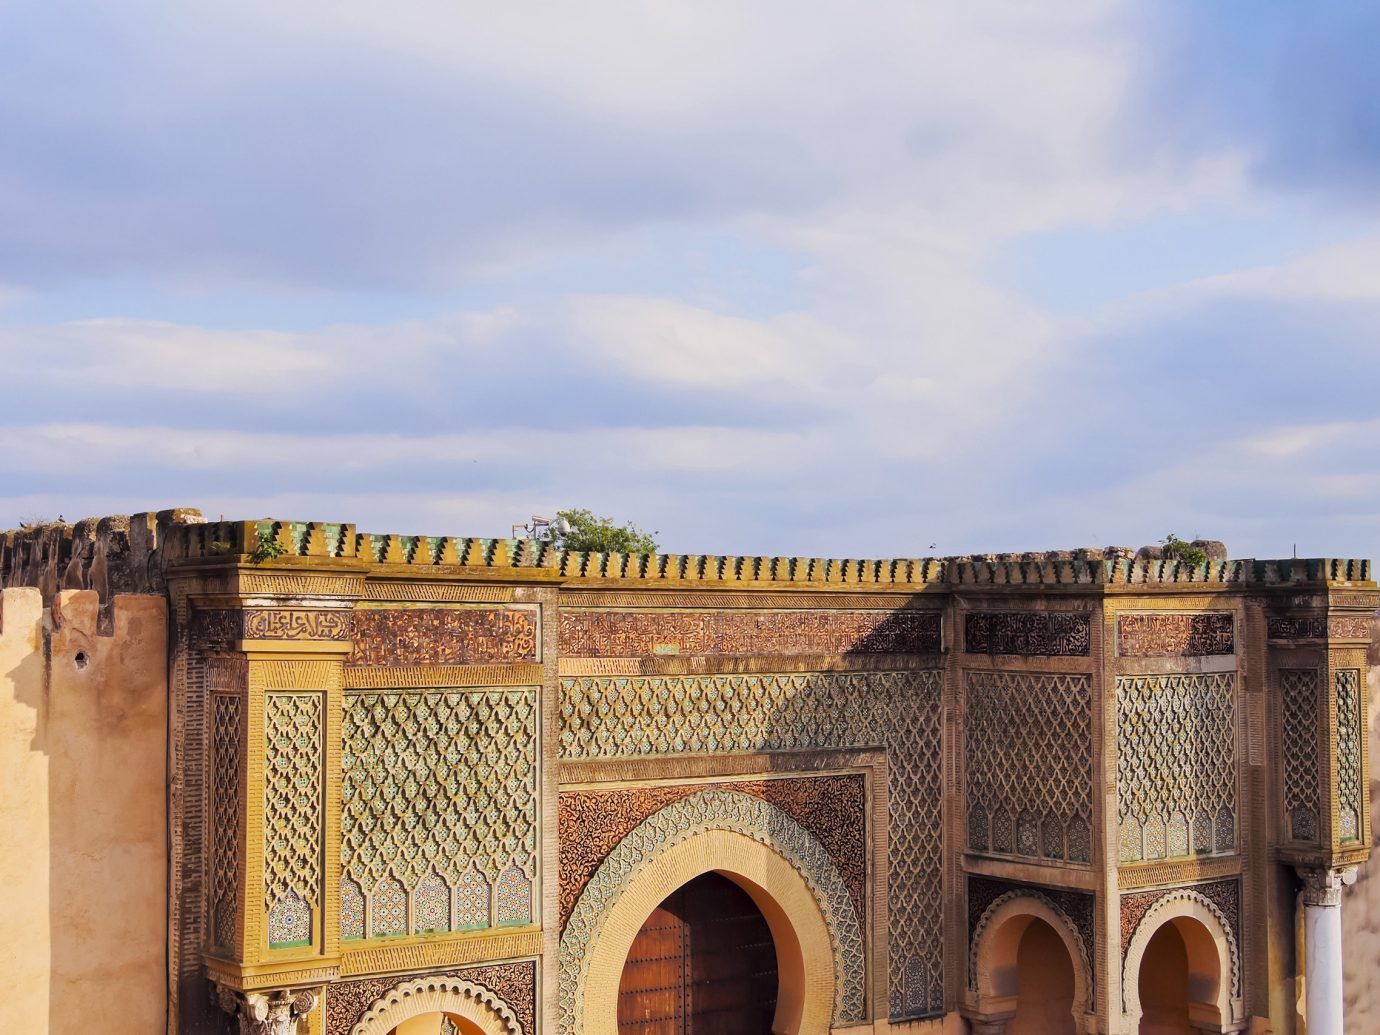 Arts + Culture Marrakech Morocco Style + Design historic site sky arch ancient history fortification wall history caravanserai building tourism palace facade